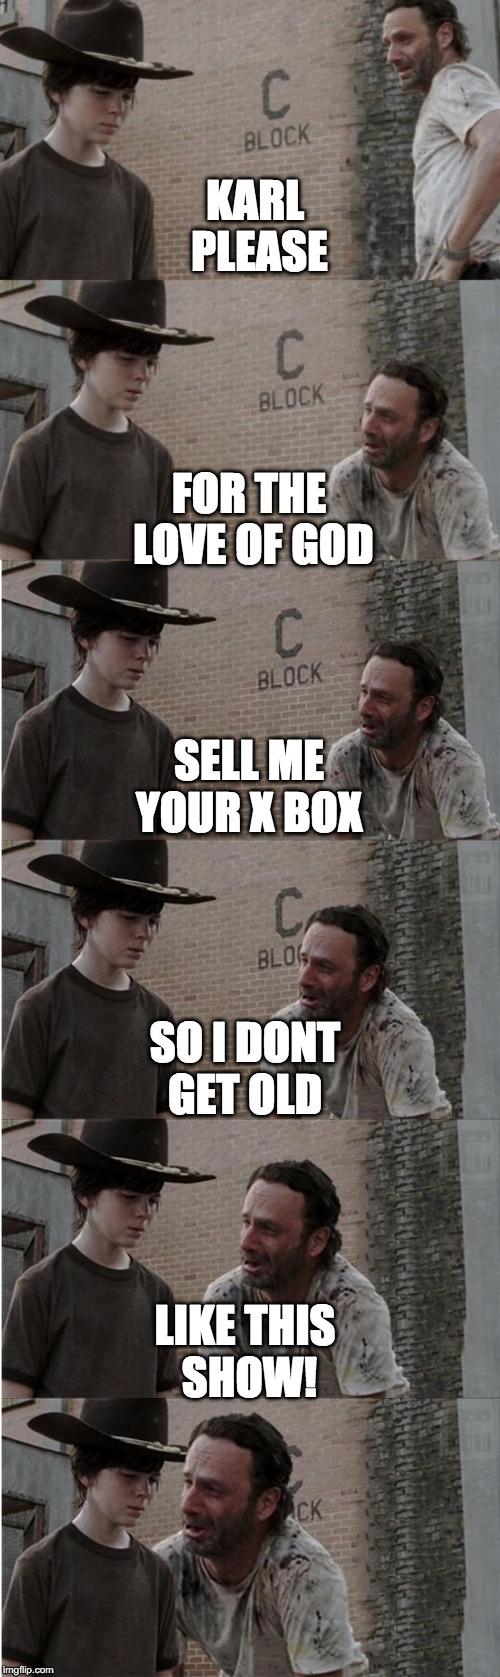 Rick and Carl Longer Meme | KARL PLEASE FOR THE LOVE OF GOD SELL ME YOUR X BOX SO I DONT GET OLD LIKE THIS SHOW! | image tagged in memes,rick and carl longer | made w/ Imgflip meme maker